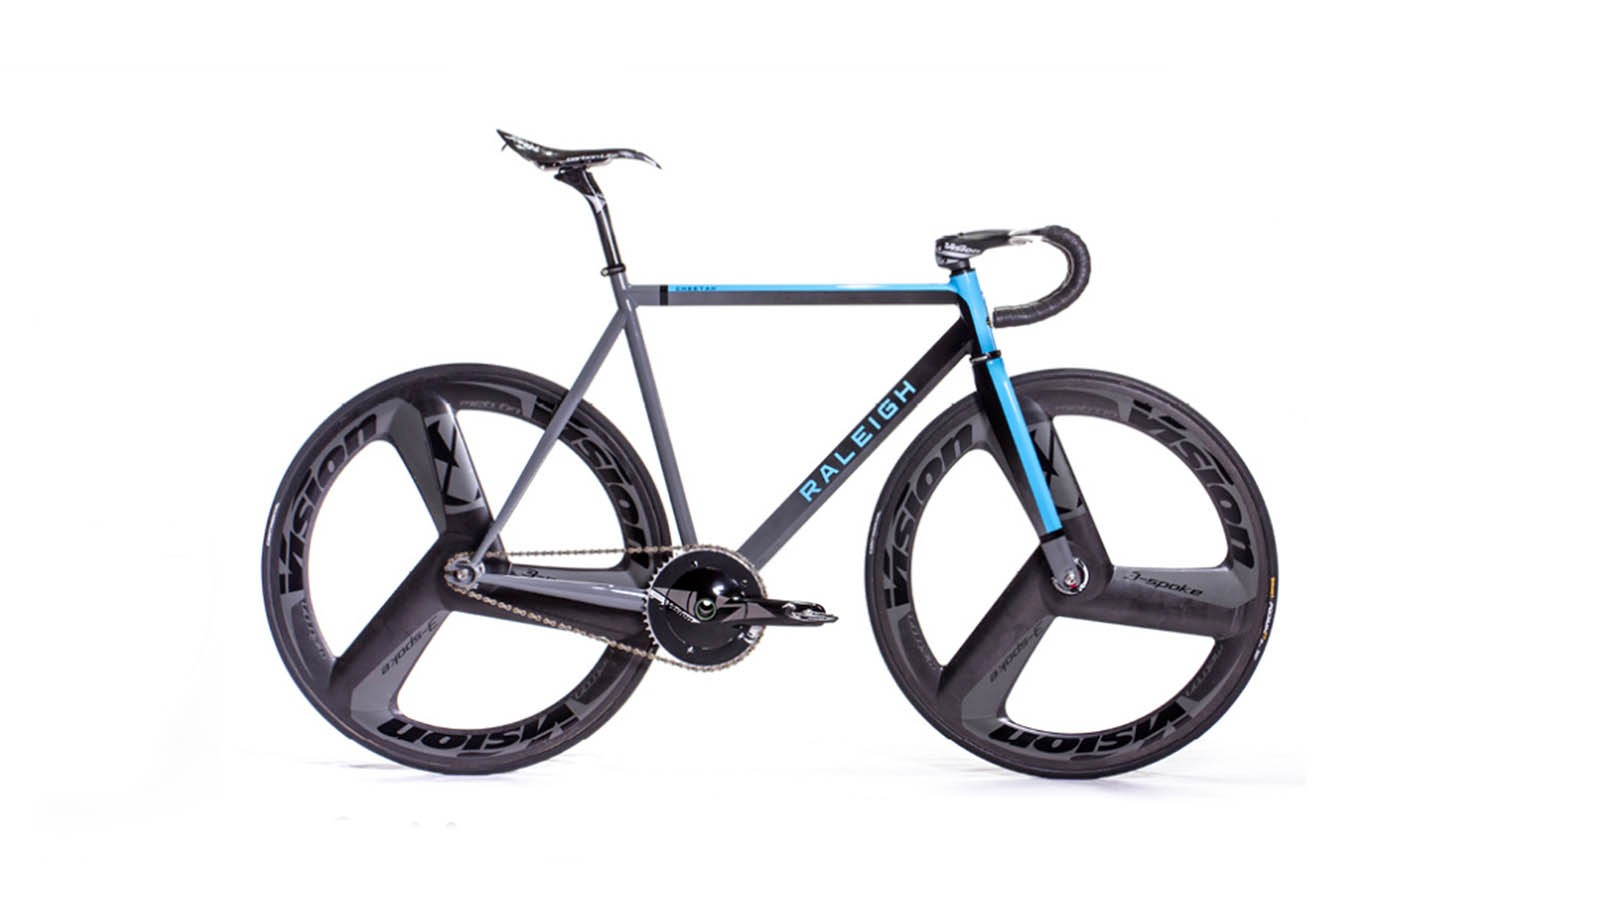 The Cheetah Fast is built with TIG-welded Columbus tubing and FSA and Vision carbon finishing kit